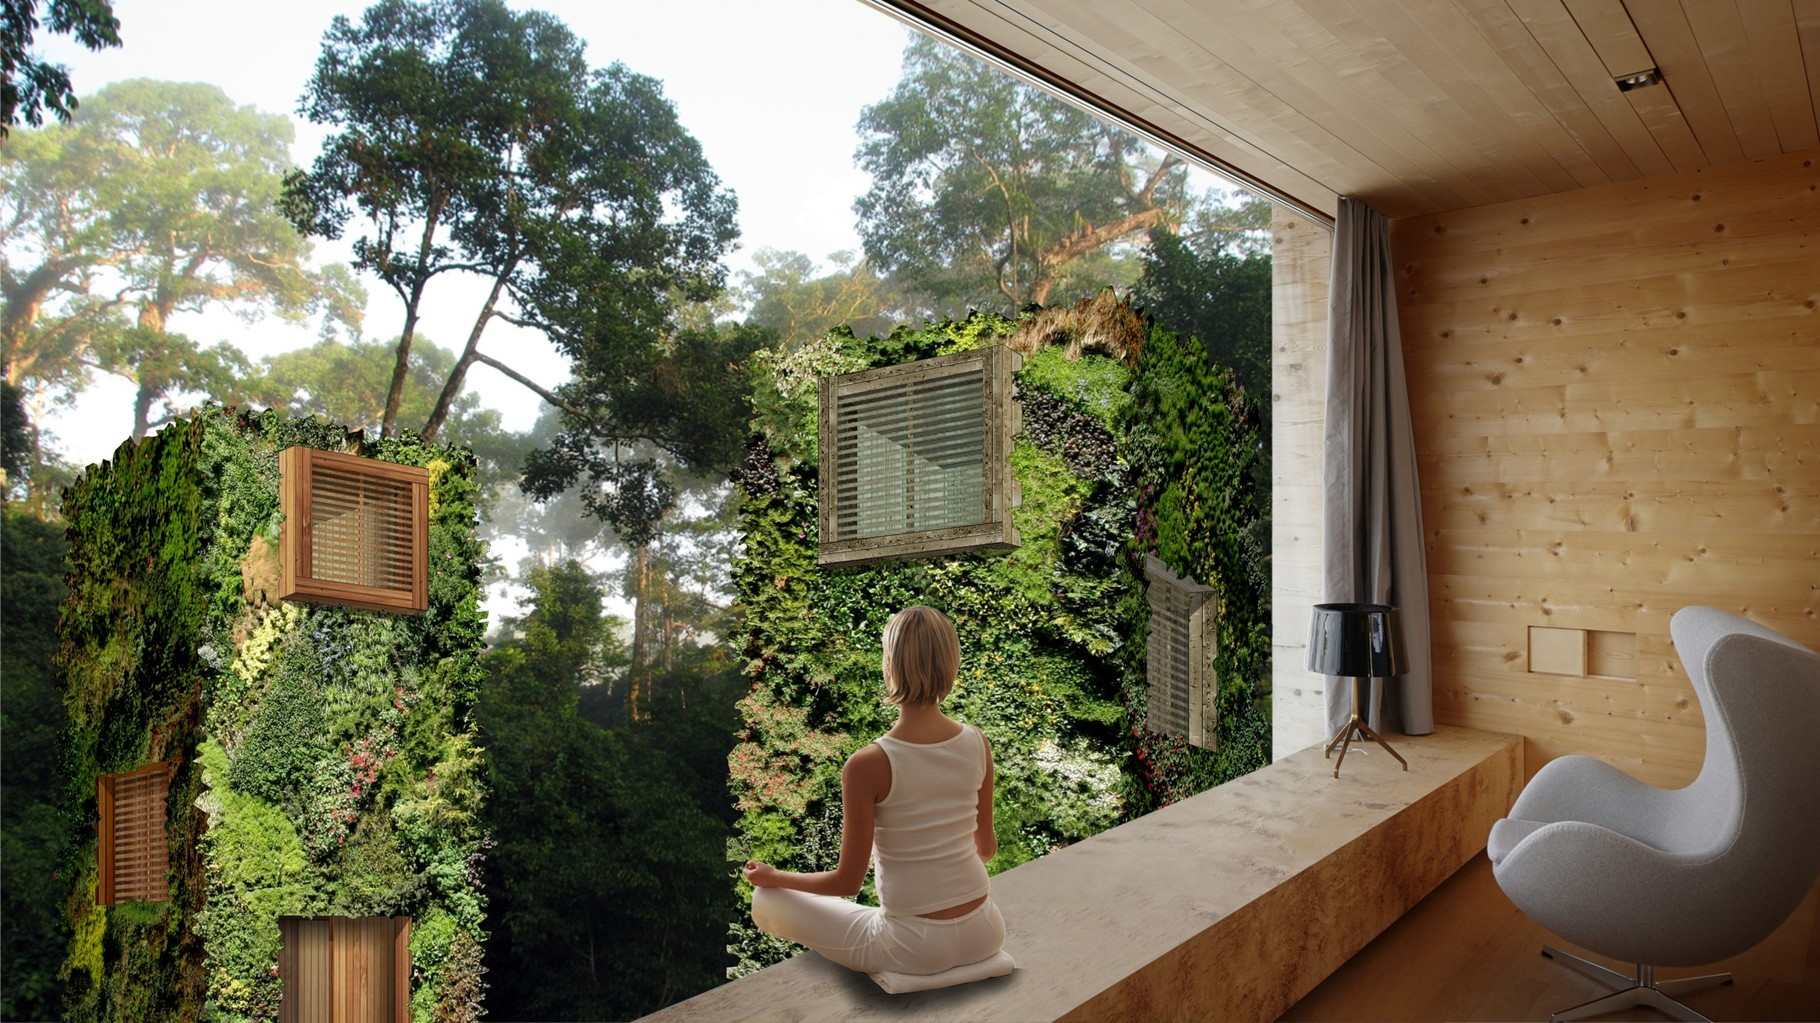 Visual OAS1S™: Rustic wooden interiors, with large windows and loggias or (French) balconies.